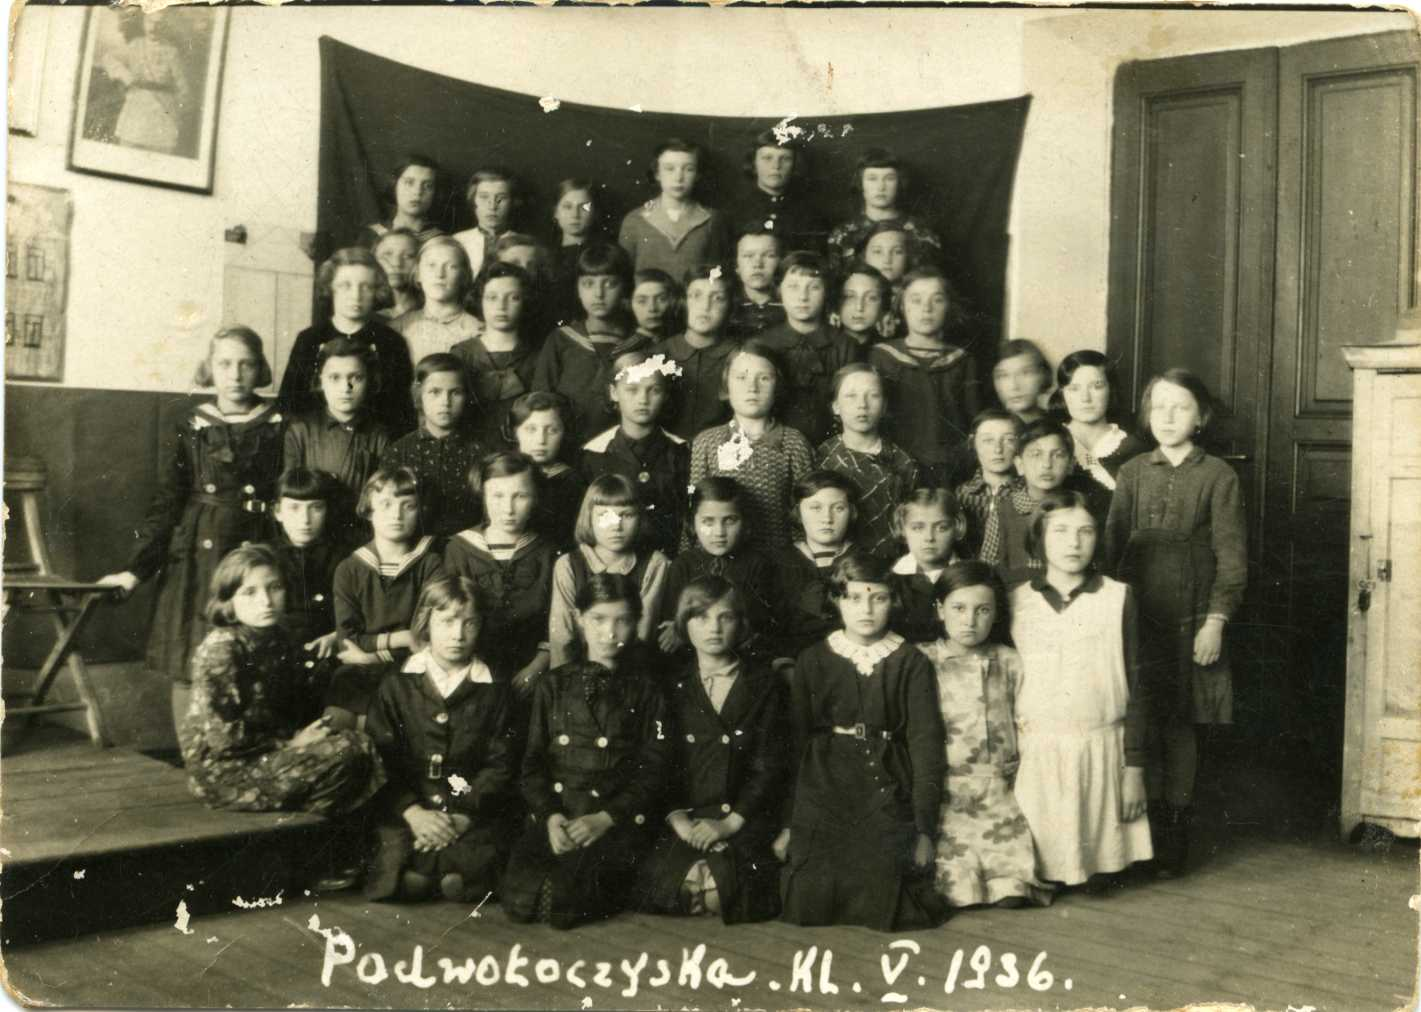 Ida Joel (second row, third from the left) class photo, 1936